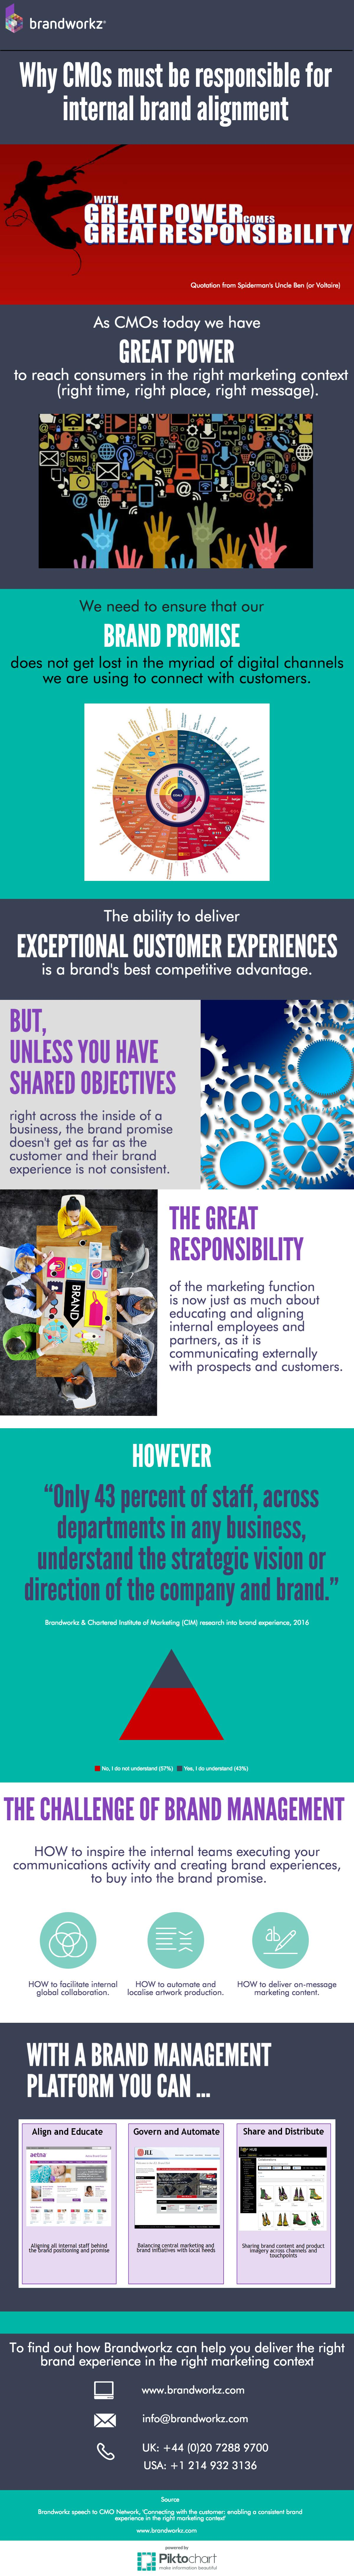 Infographic why cmos must be responsible for internal brand alignment